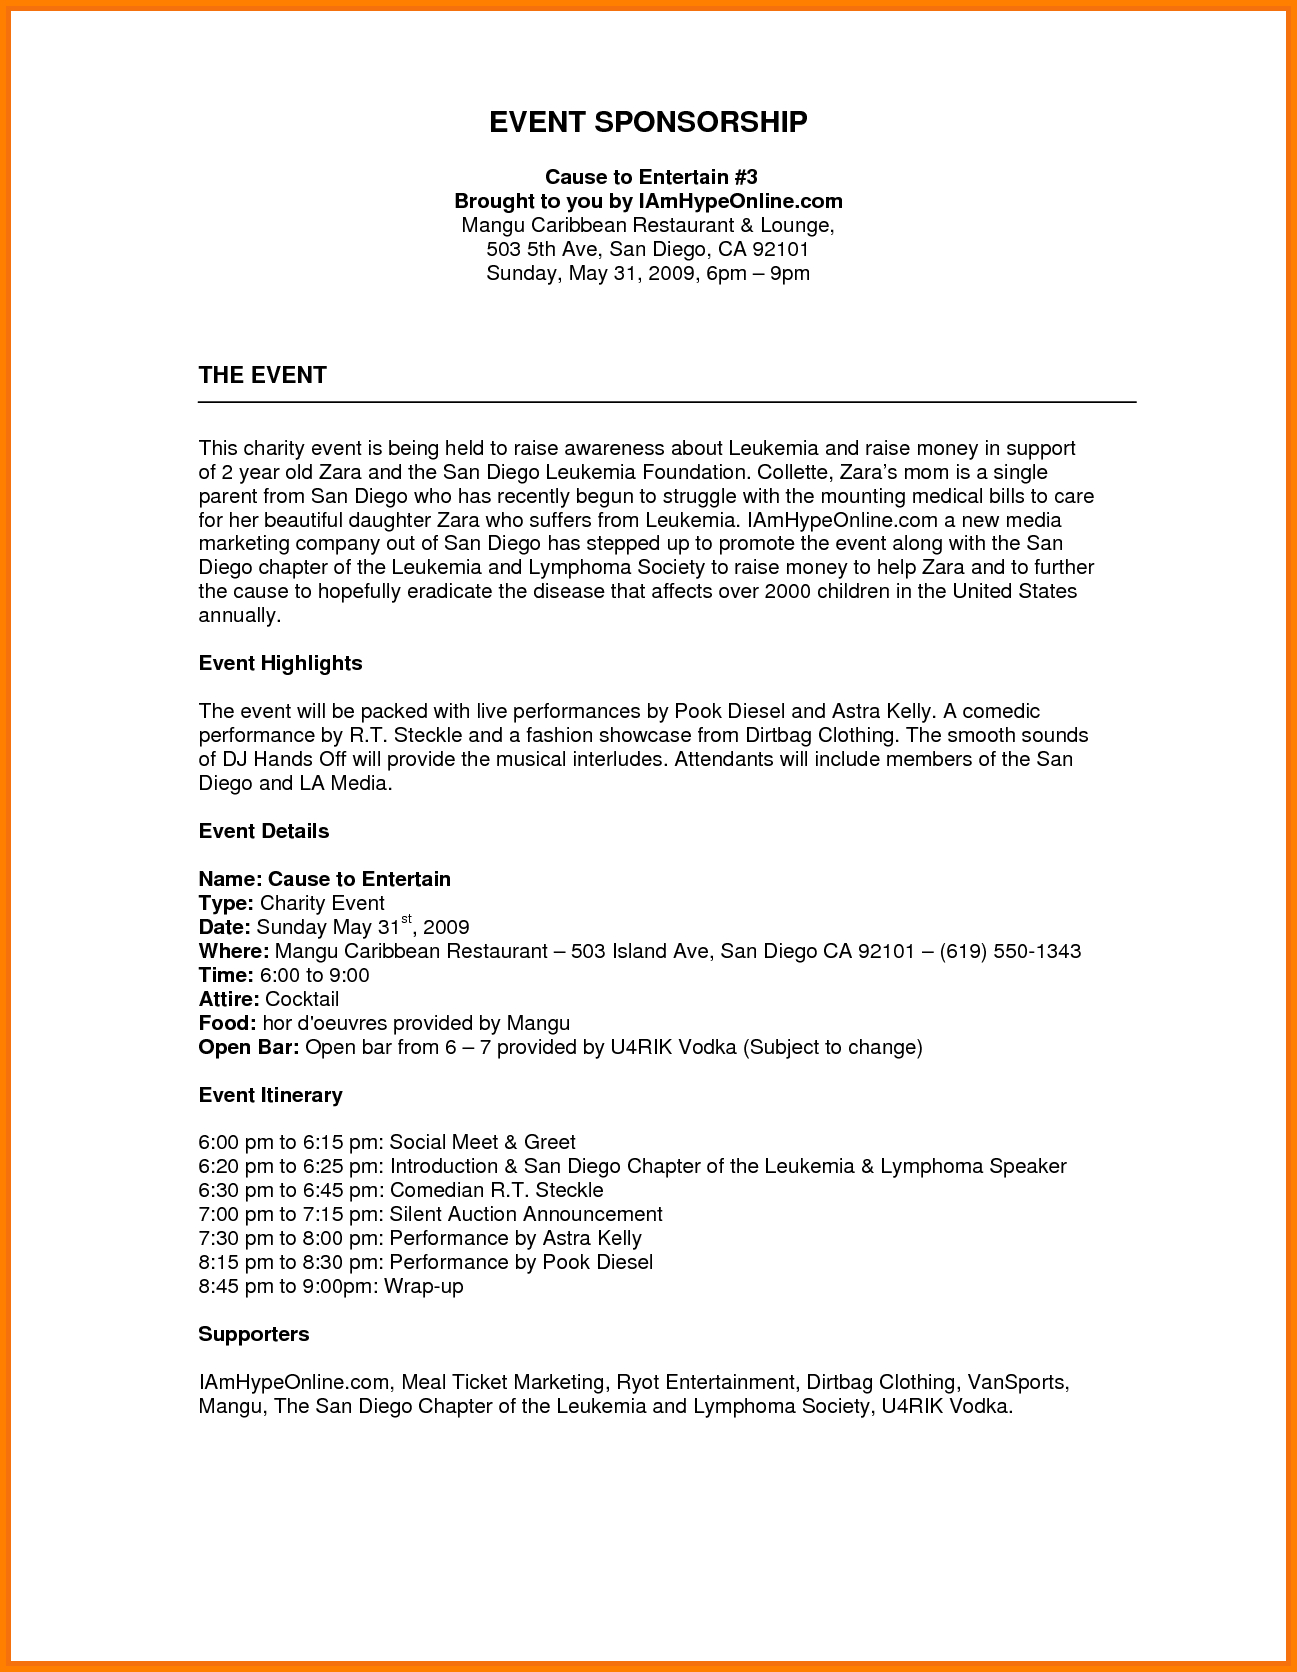 Sponsorship Proposal Letter Template - Image Result for Sponsorship Proposal Template Financetemplate